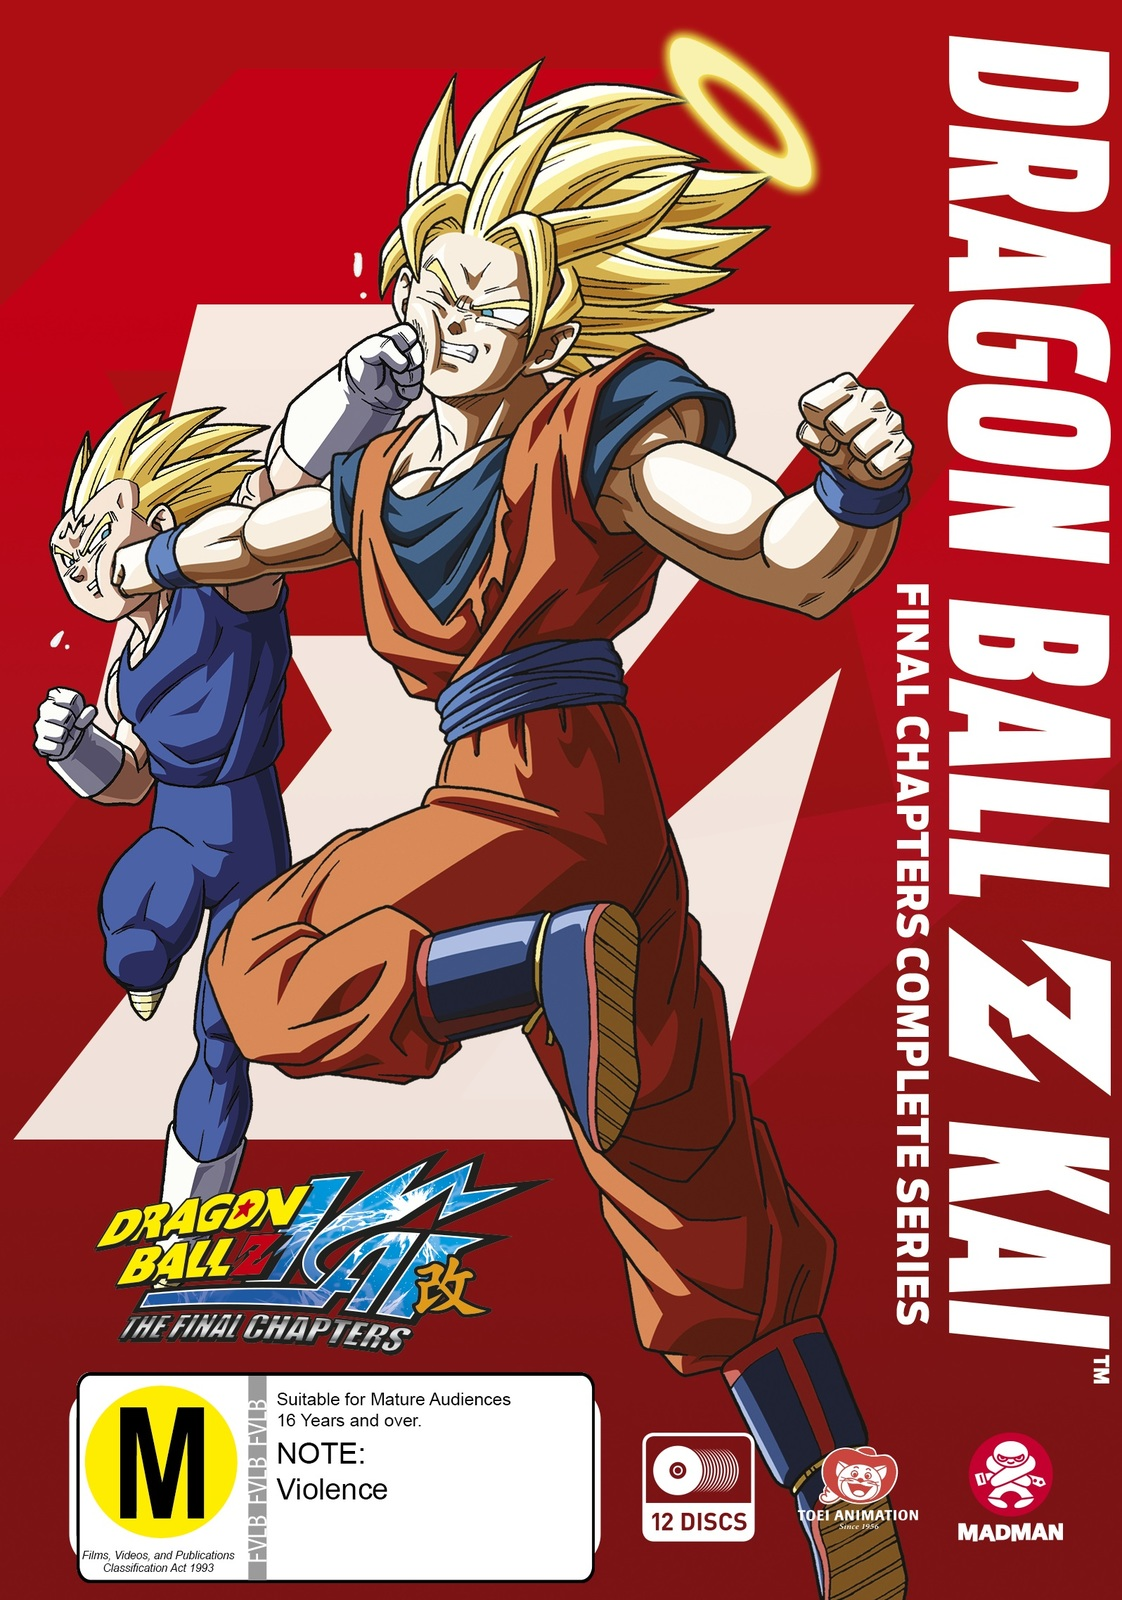 Dragon Ball Z Kai: The Final Chapters - Complete Series on DVD image